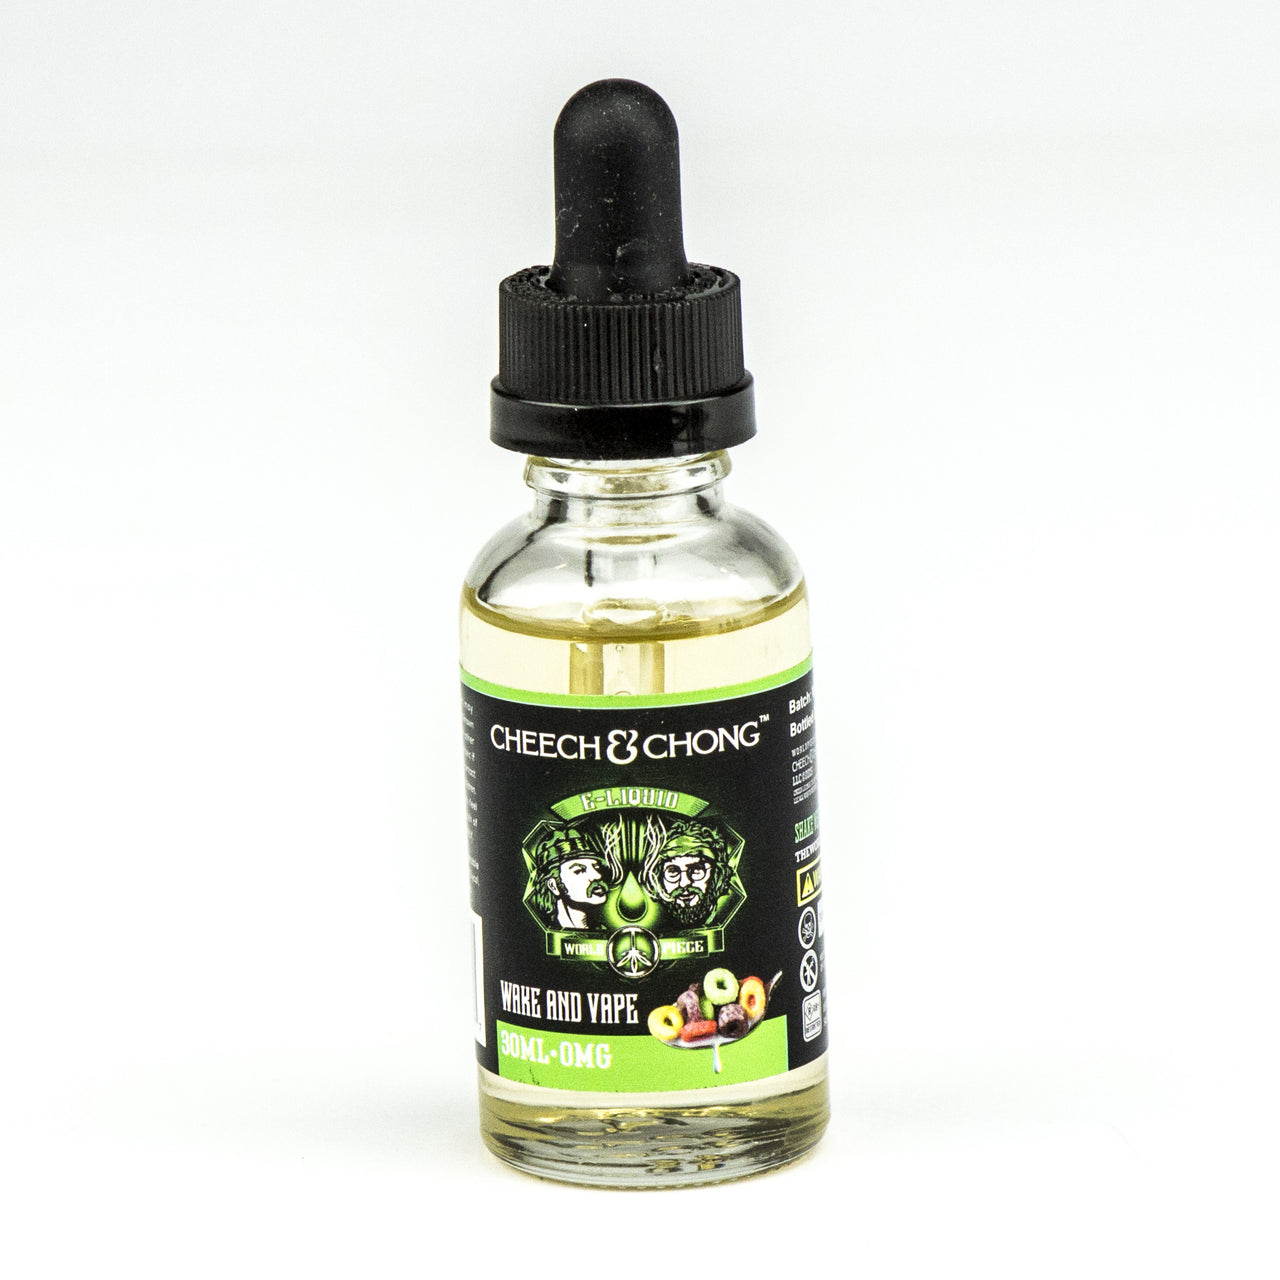 Cheech & Chong Eliquid - Wake & Vape